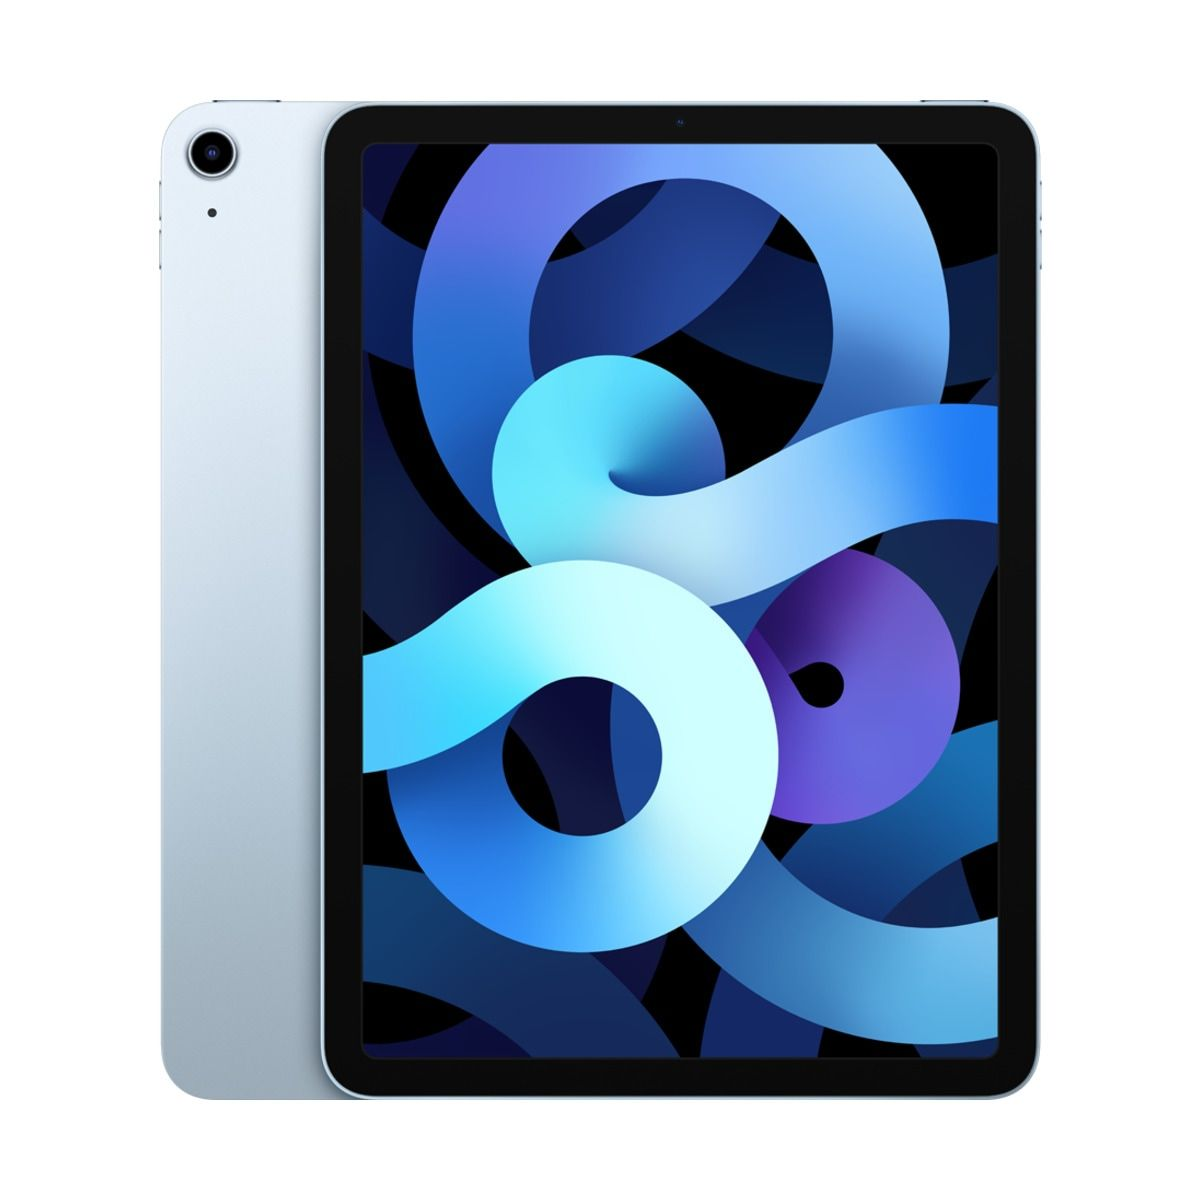 iPad Air Wi-Fi 64GB - Sky Blue / SK